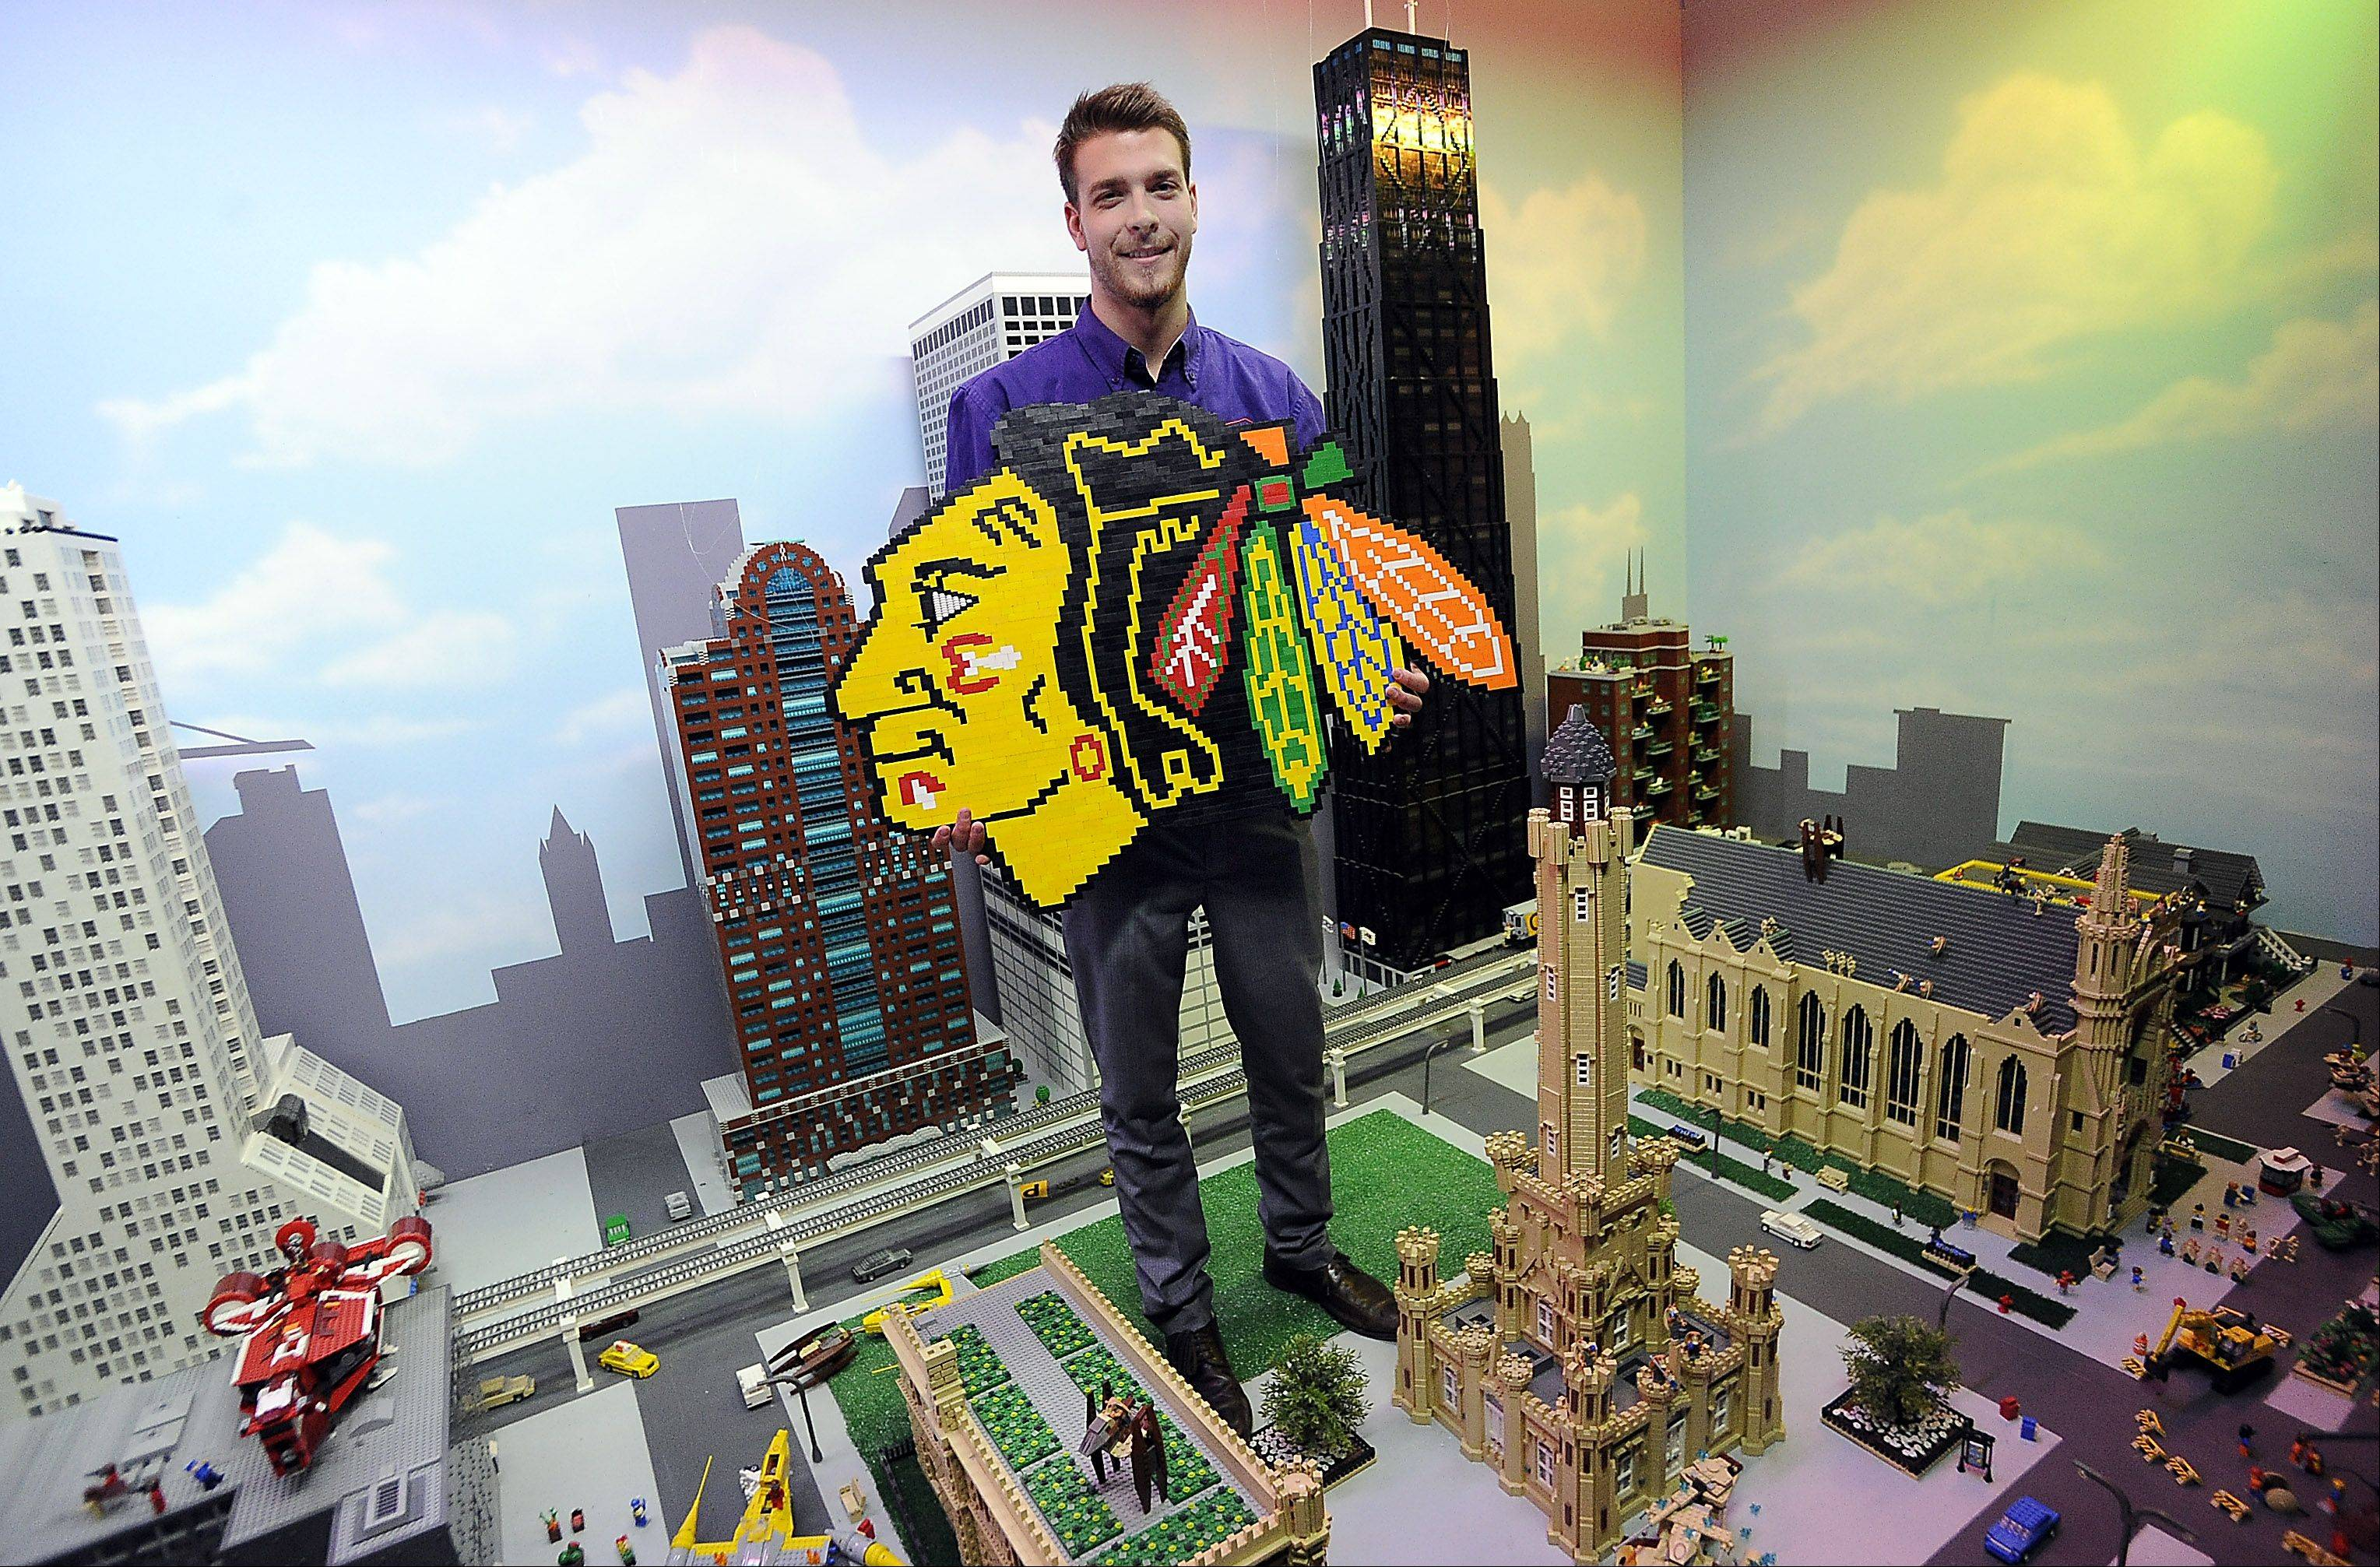 Andrew Johnson of Bartlett holds the Blackhawks logo he made using 756 Lego pieces above a downtown Chicago landscape also made of Lego pieces.